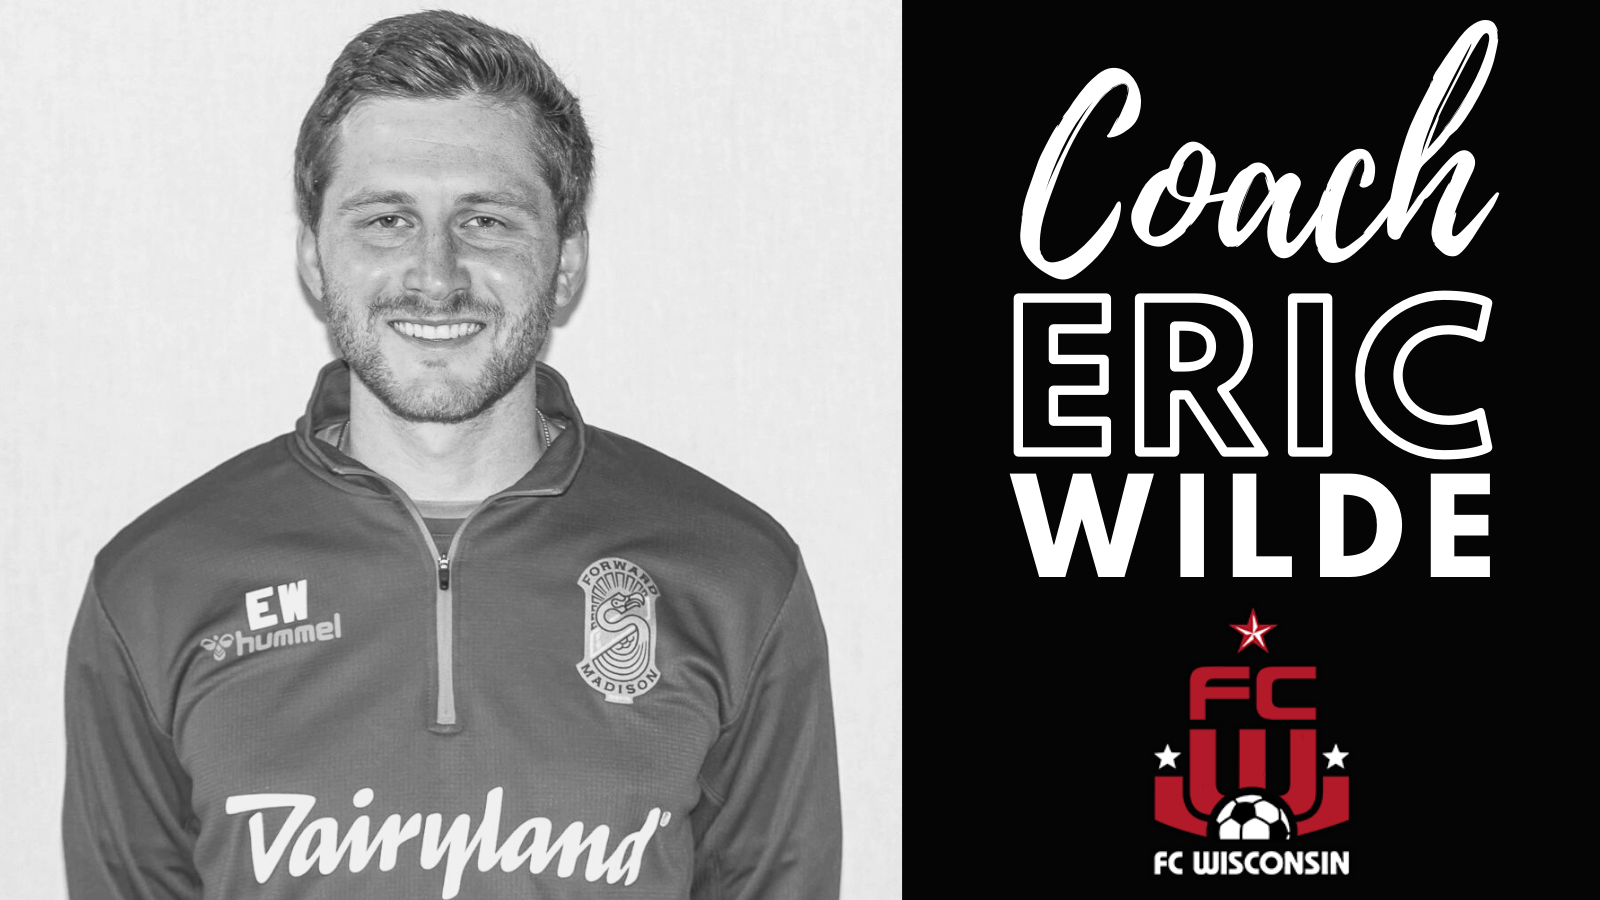 Coach Eric Wilde Promoted to Full-time Coaching Position